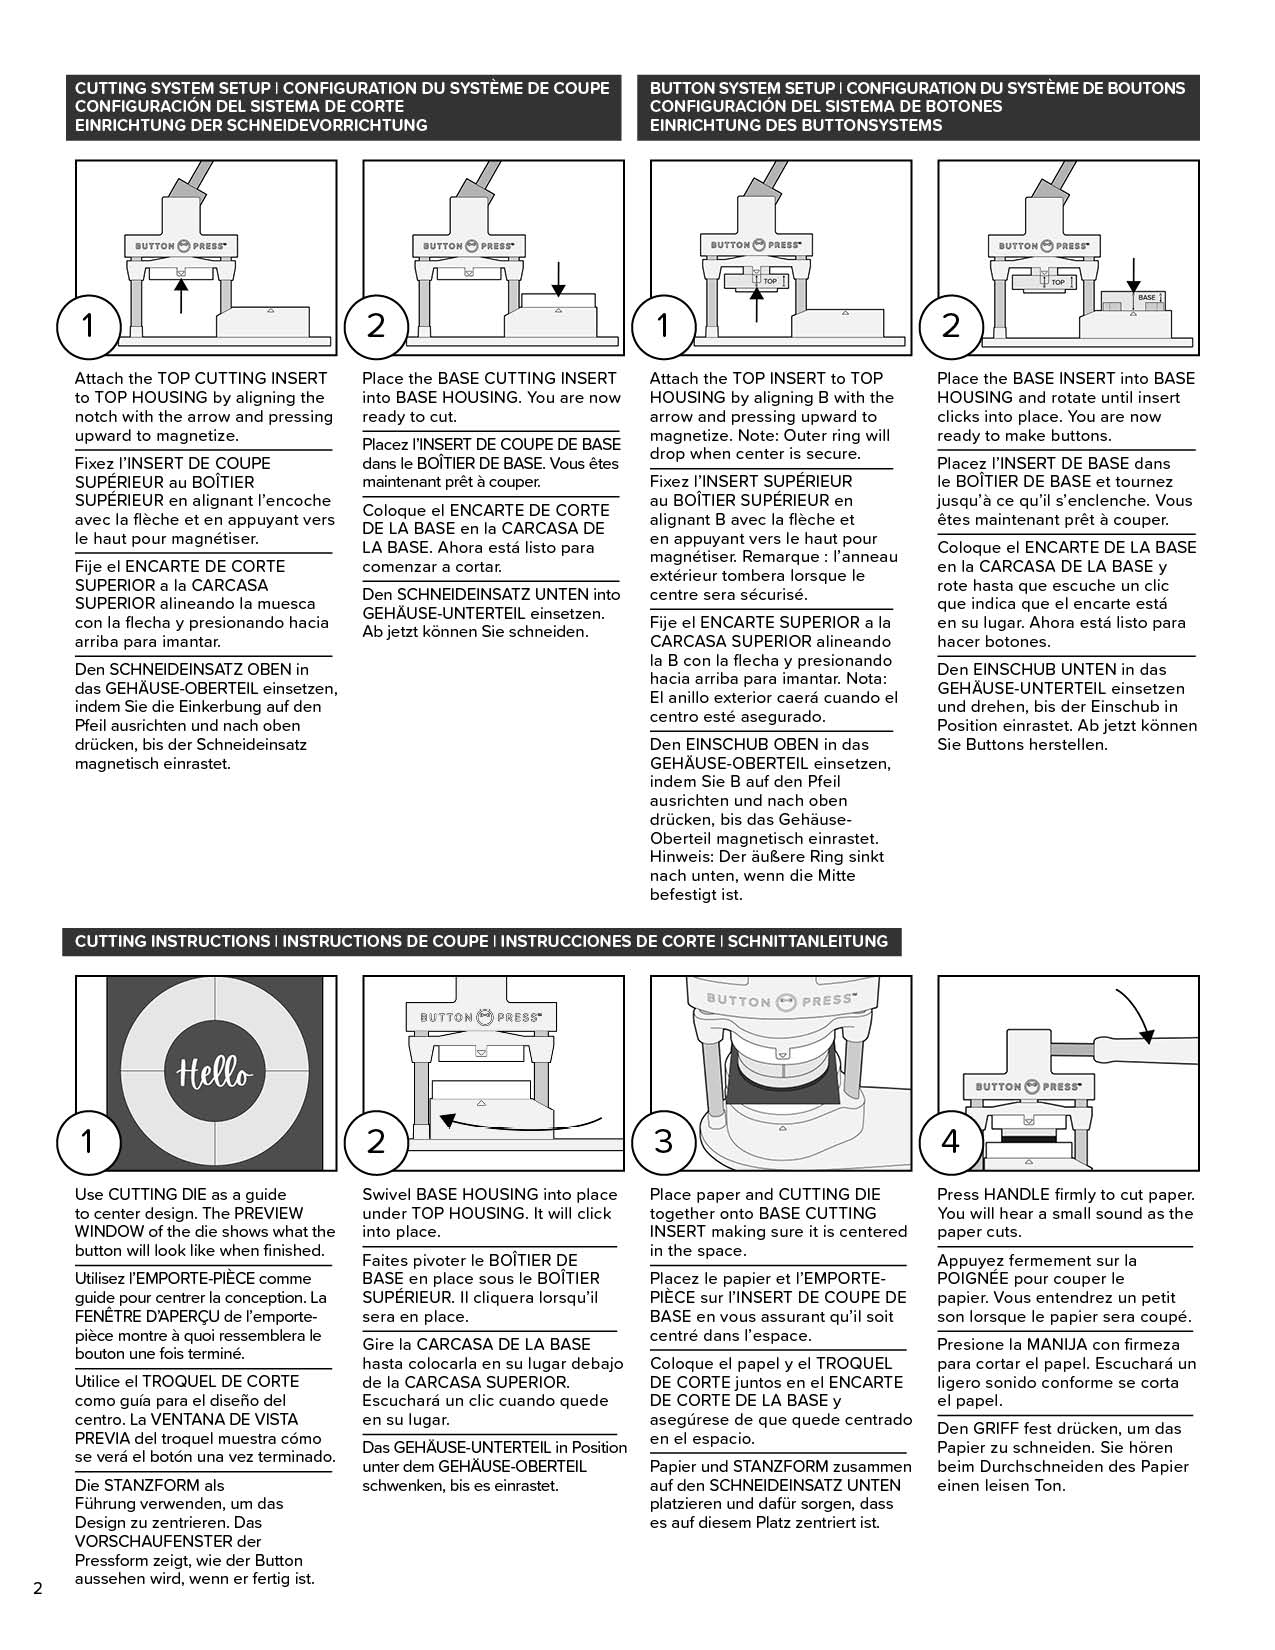 660524_WR_ButtonPress_ButtonMakers_Instructions_V32